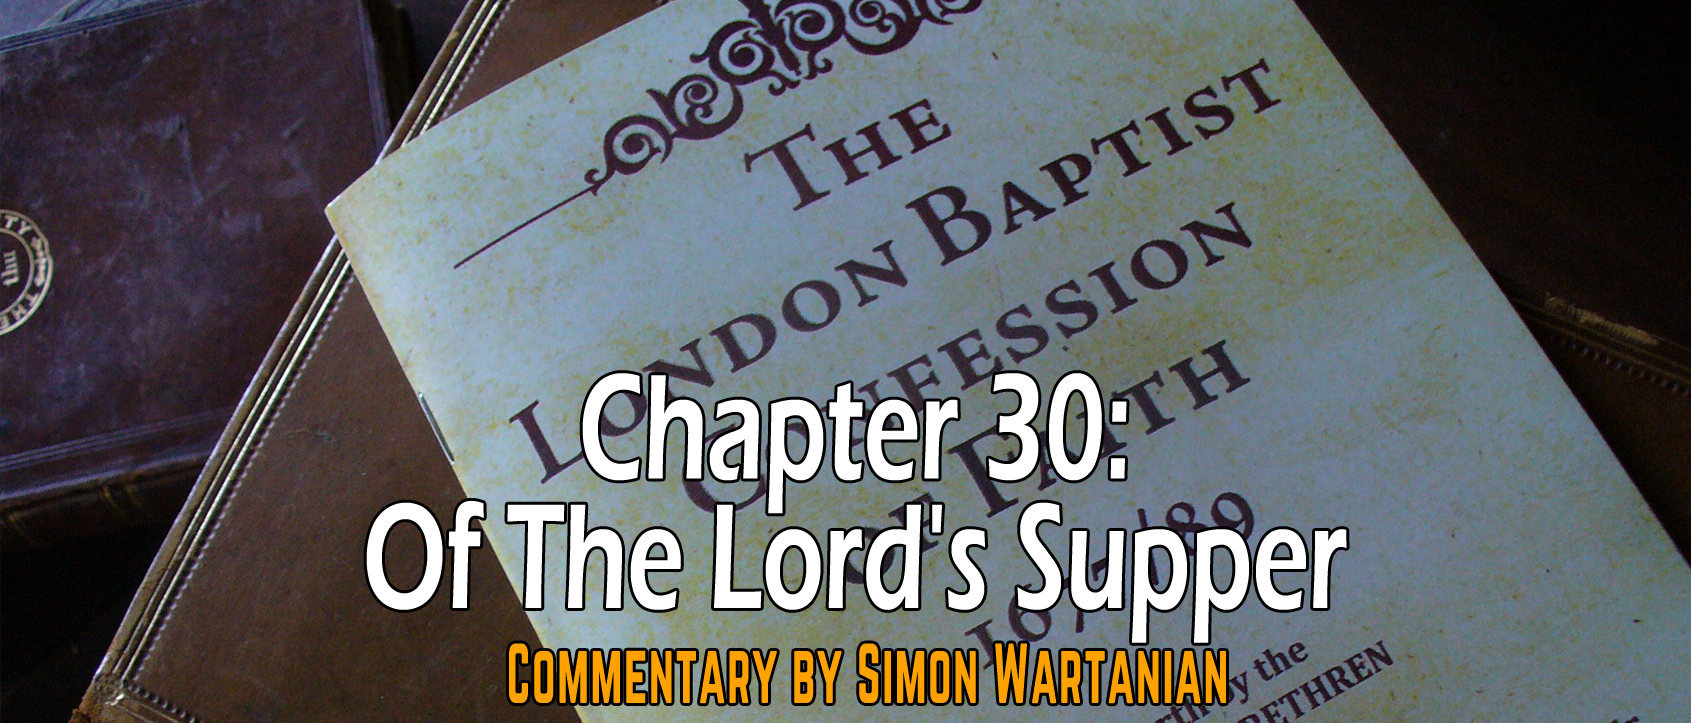 1689 Baptist Confession Chapter 30: Of the Lord's Supper - Commentary